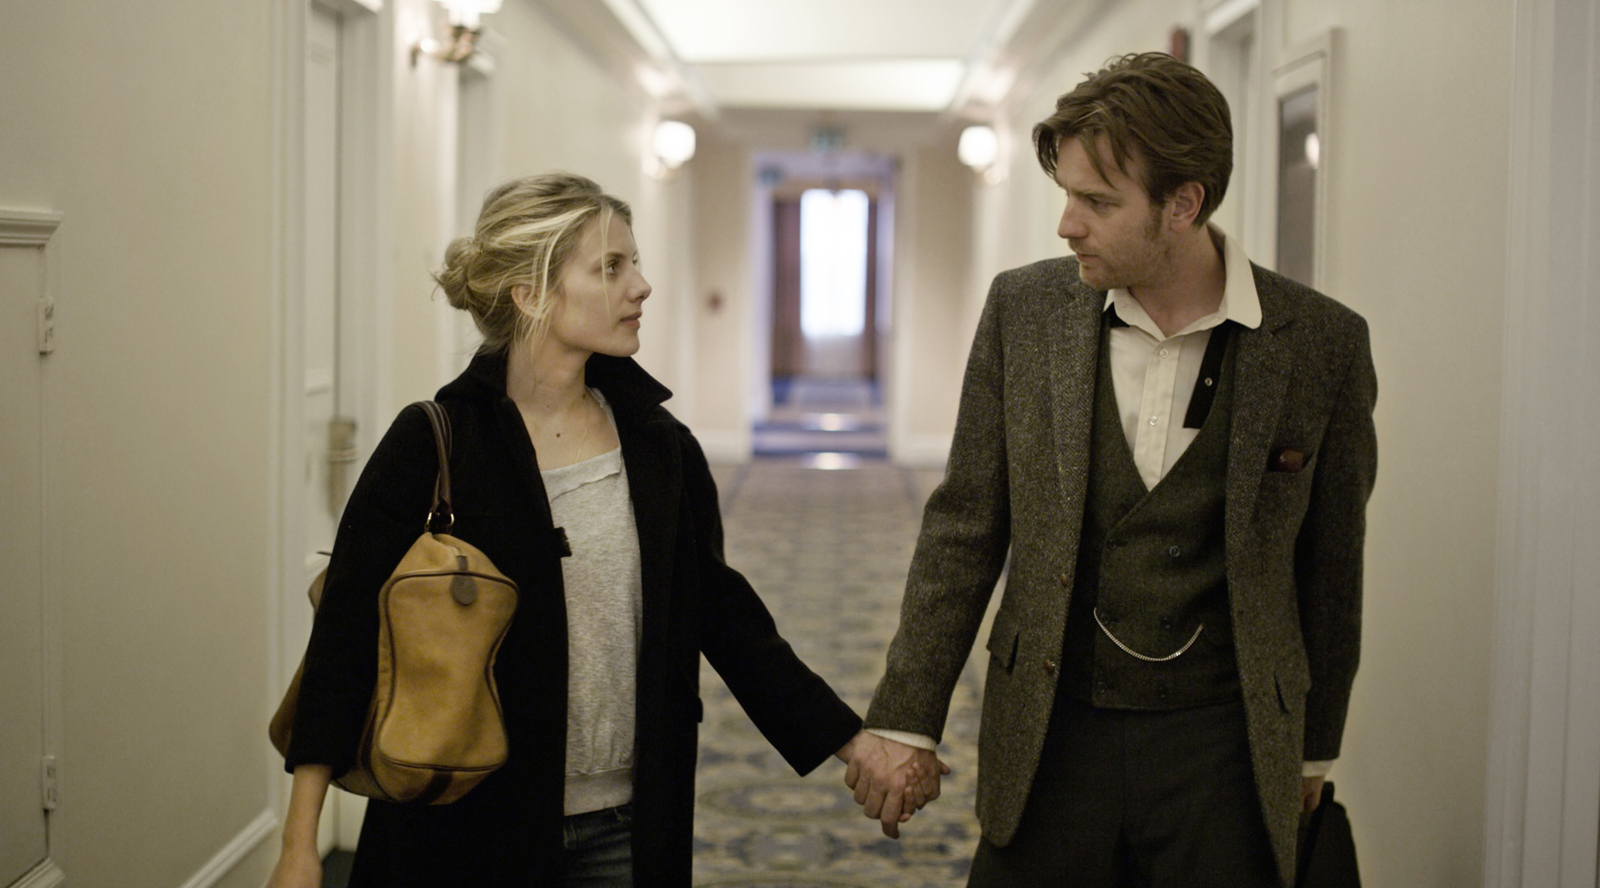 """Mélanie Laurent (left) and Ewan McGregor (right) star in writer/director Mike Mills' """"Beginners,"""" a Focus Features release. Photo courtesy: Focus Features."""